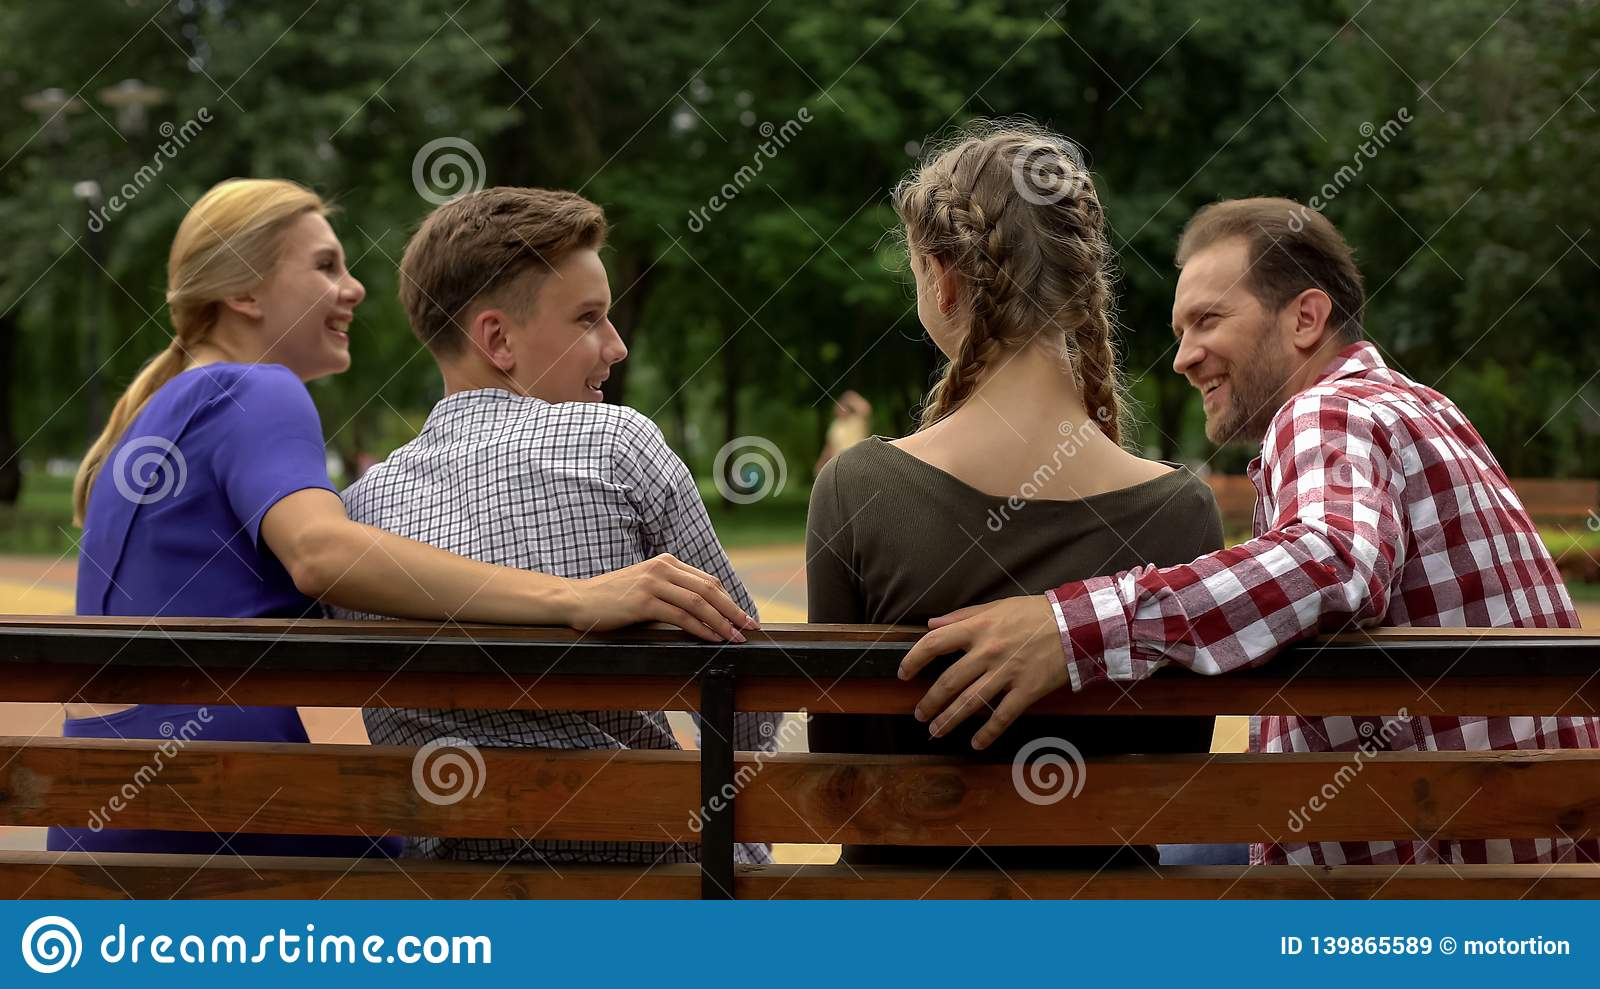 Cheerful parents and their teenage children planning weekend on bench in park